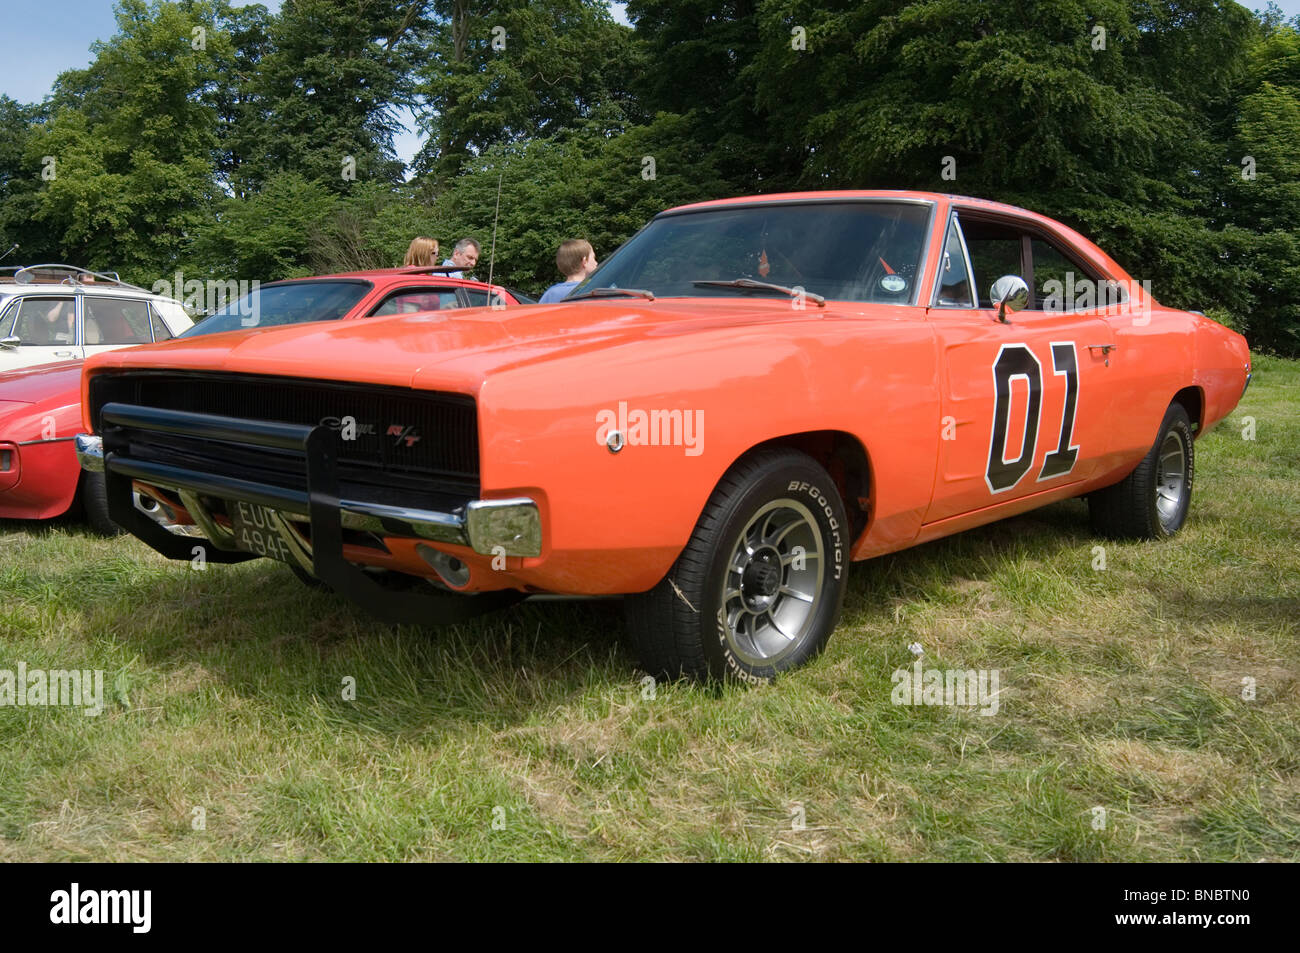 1969 dodge charger mopar general lee replica muscle car TV show ...